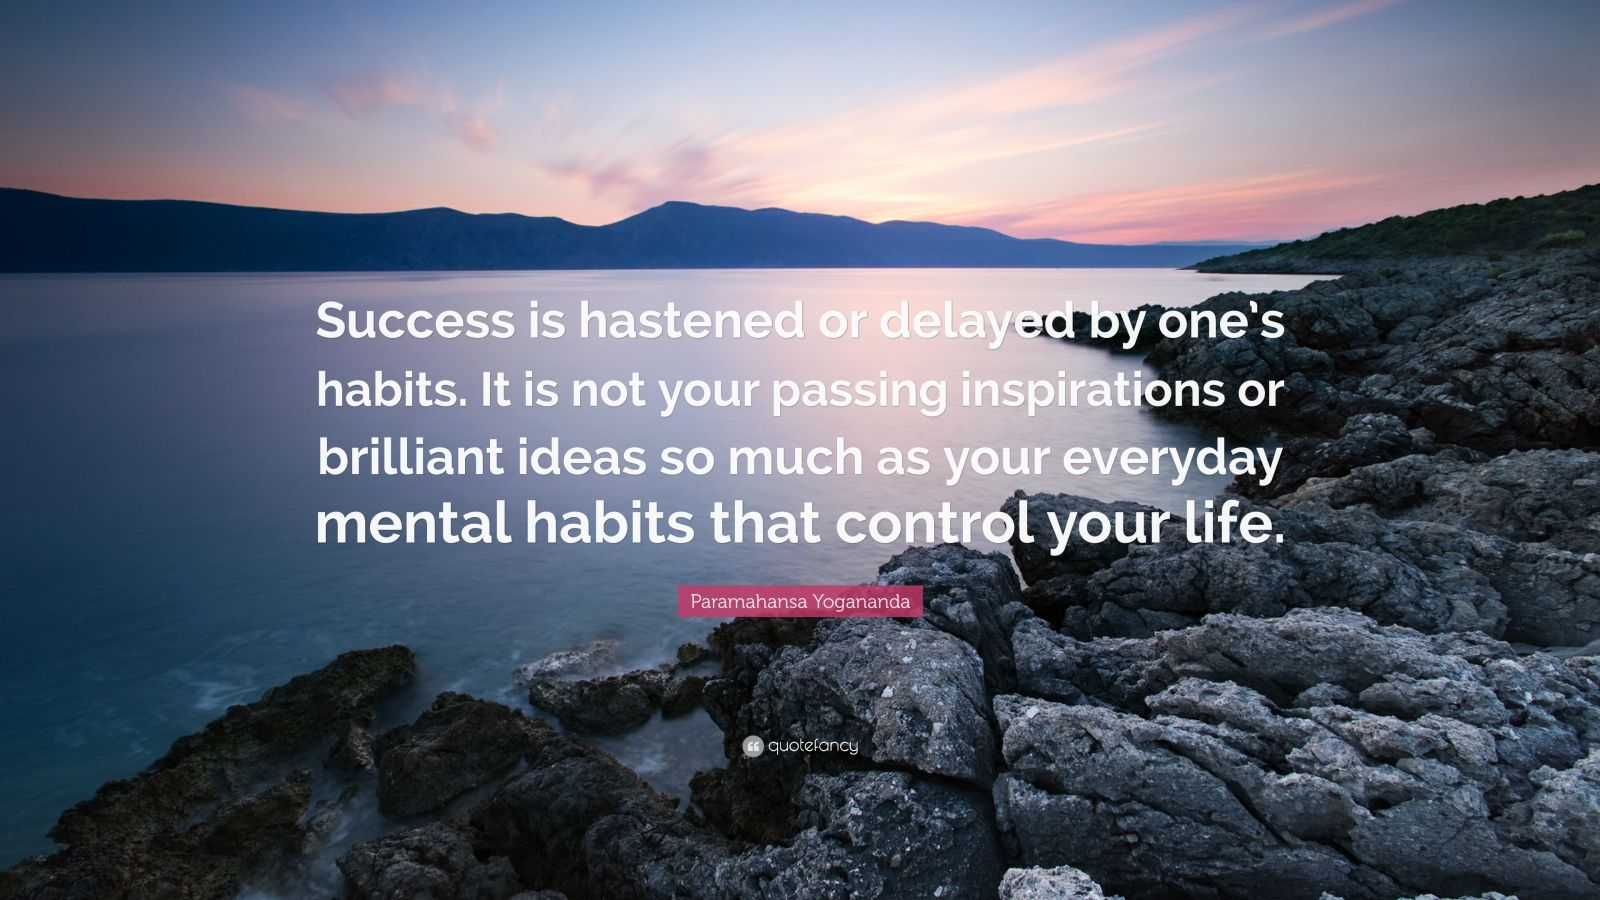 """Paramahansa Yogananda Quote: """"Success is hastened or delayed by one's habits. It is not your passing inspirations or brilliant ideas so much as your everyday mental habits that control your life."""""""